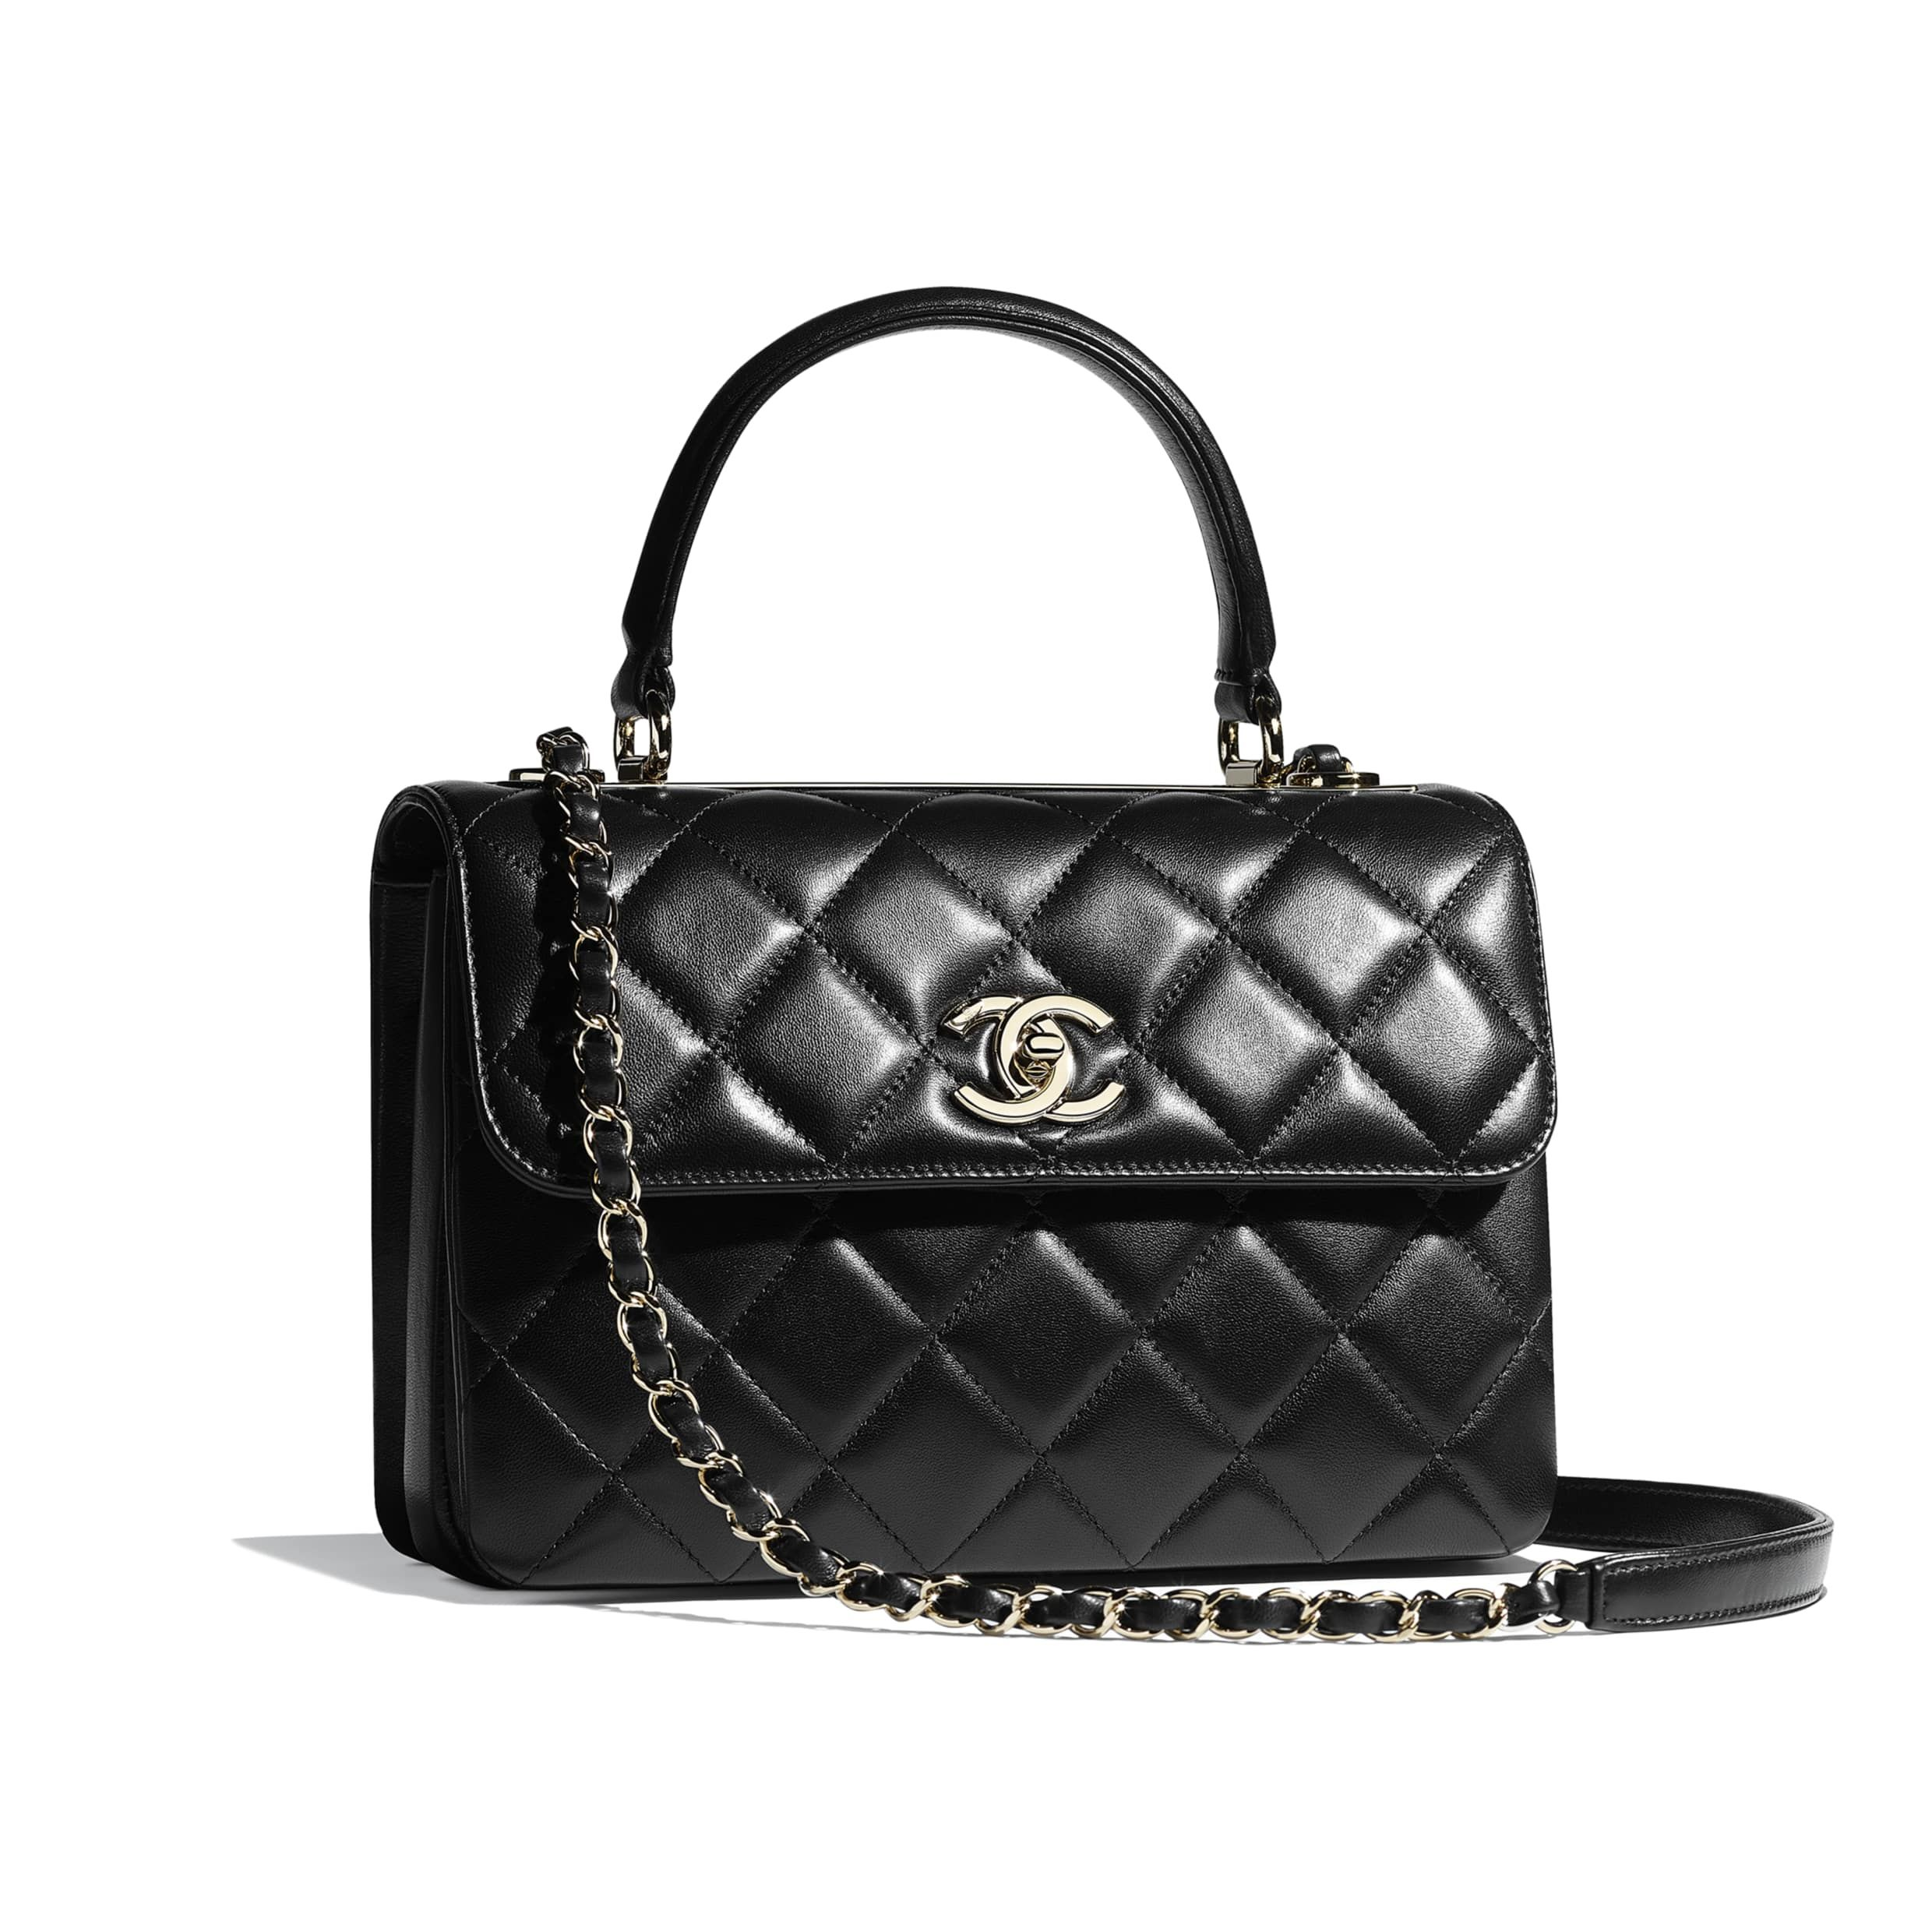 6fe814e240 Small Flap Bag with Top Handle - Black - Lambskin   Gold-Tone Metal - Other  view - see full sized version